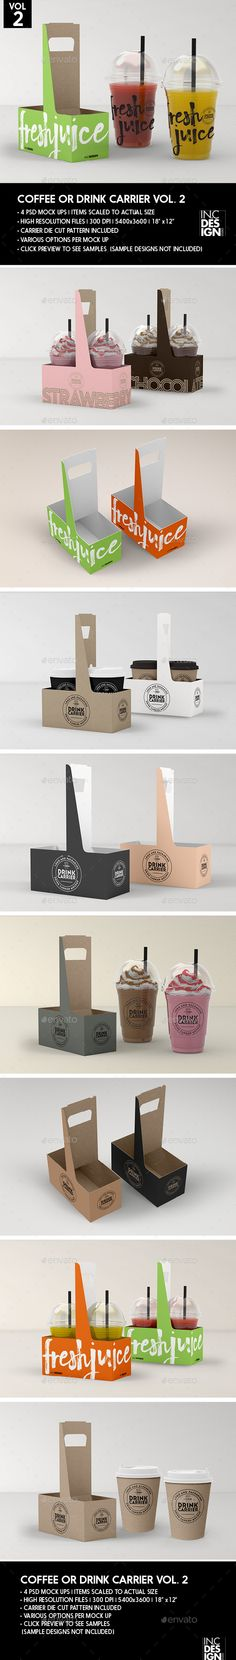 Coffee or Drink Take out Carrier Vol.2 Packaging Mock Up - Food and Drink Packaging